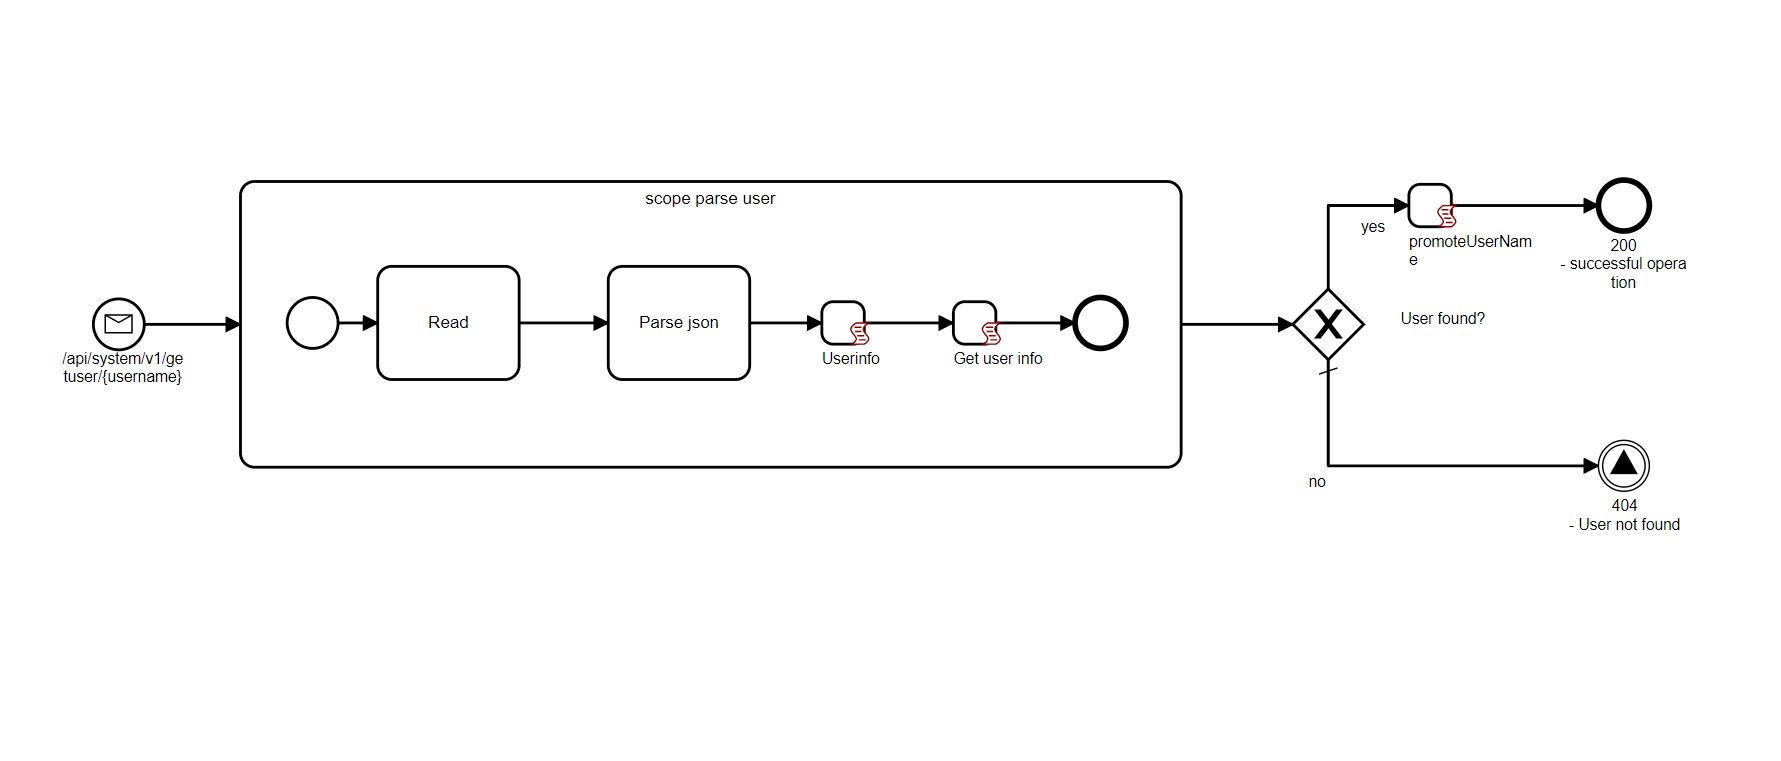 BPMN workflow gives a nice overview but you have to know where to look for the details.